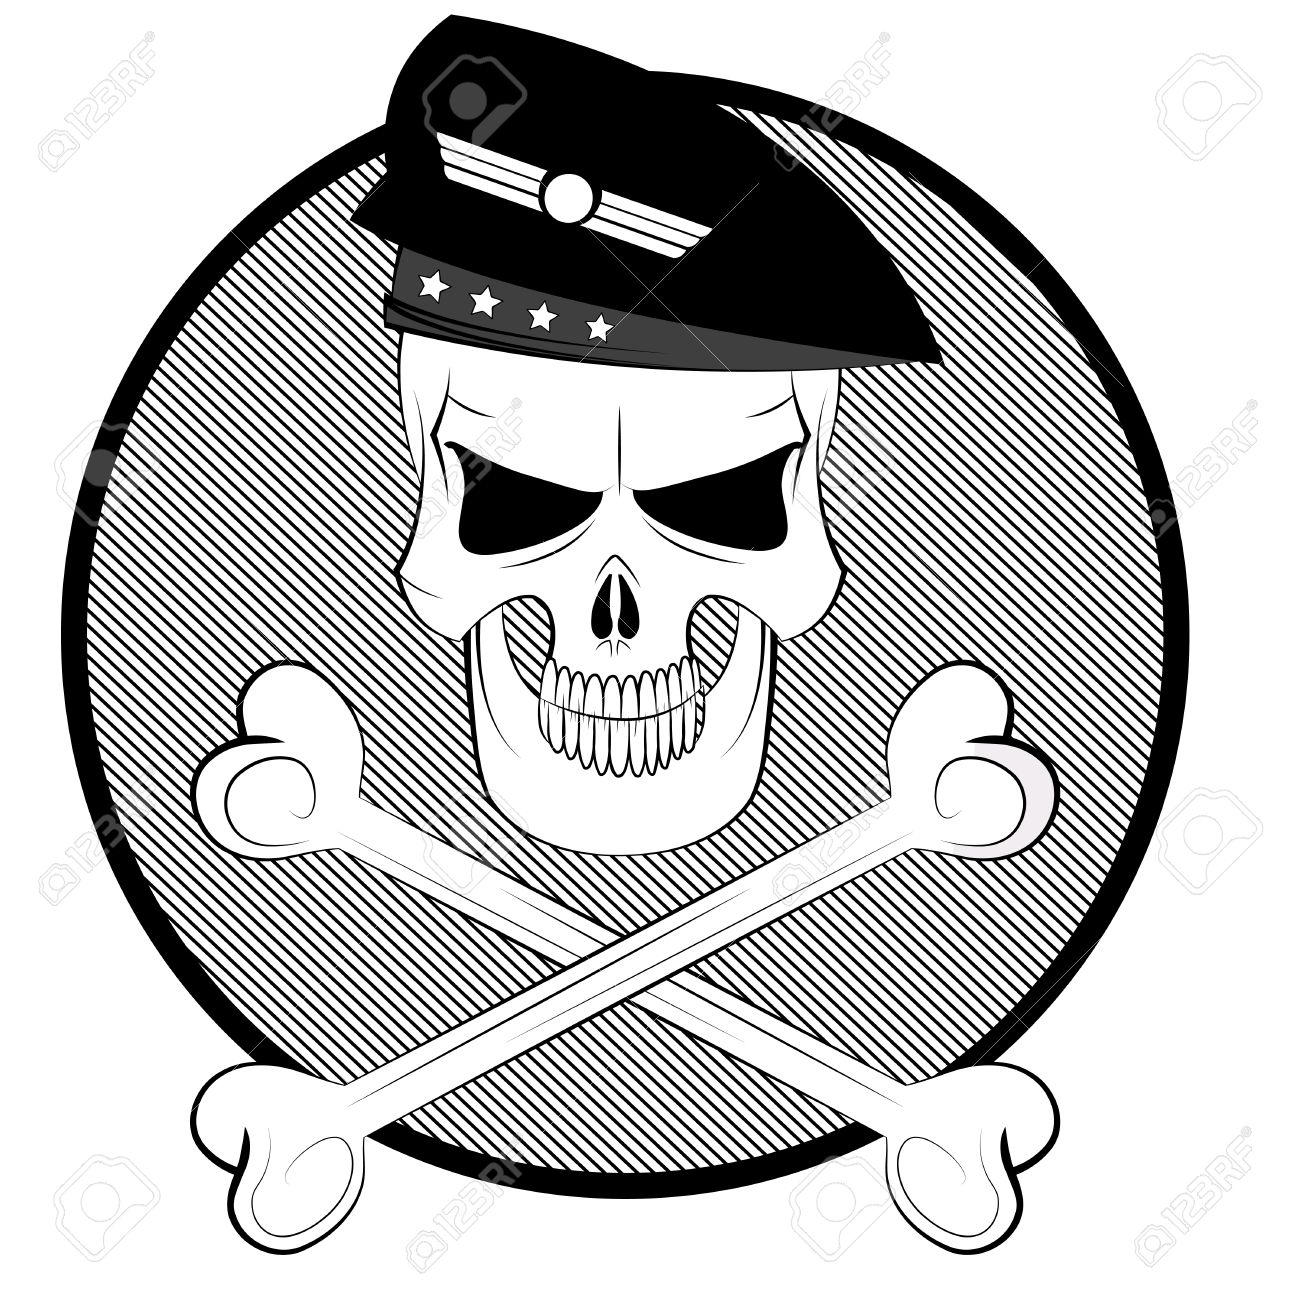 1300x1300 Black And White Cartoon Commando Skull In Beret With Crossbones